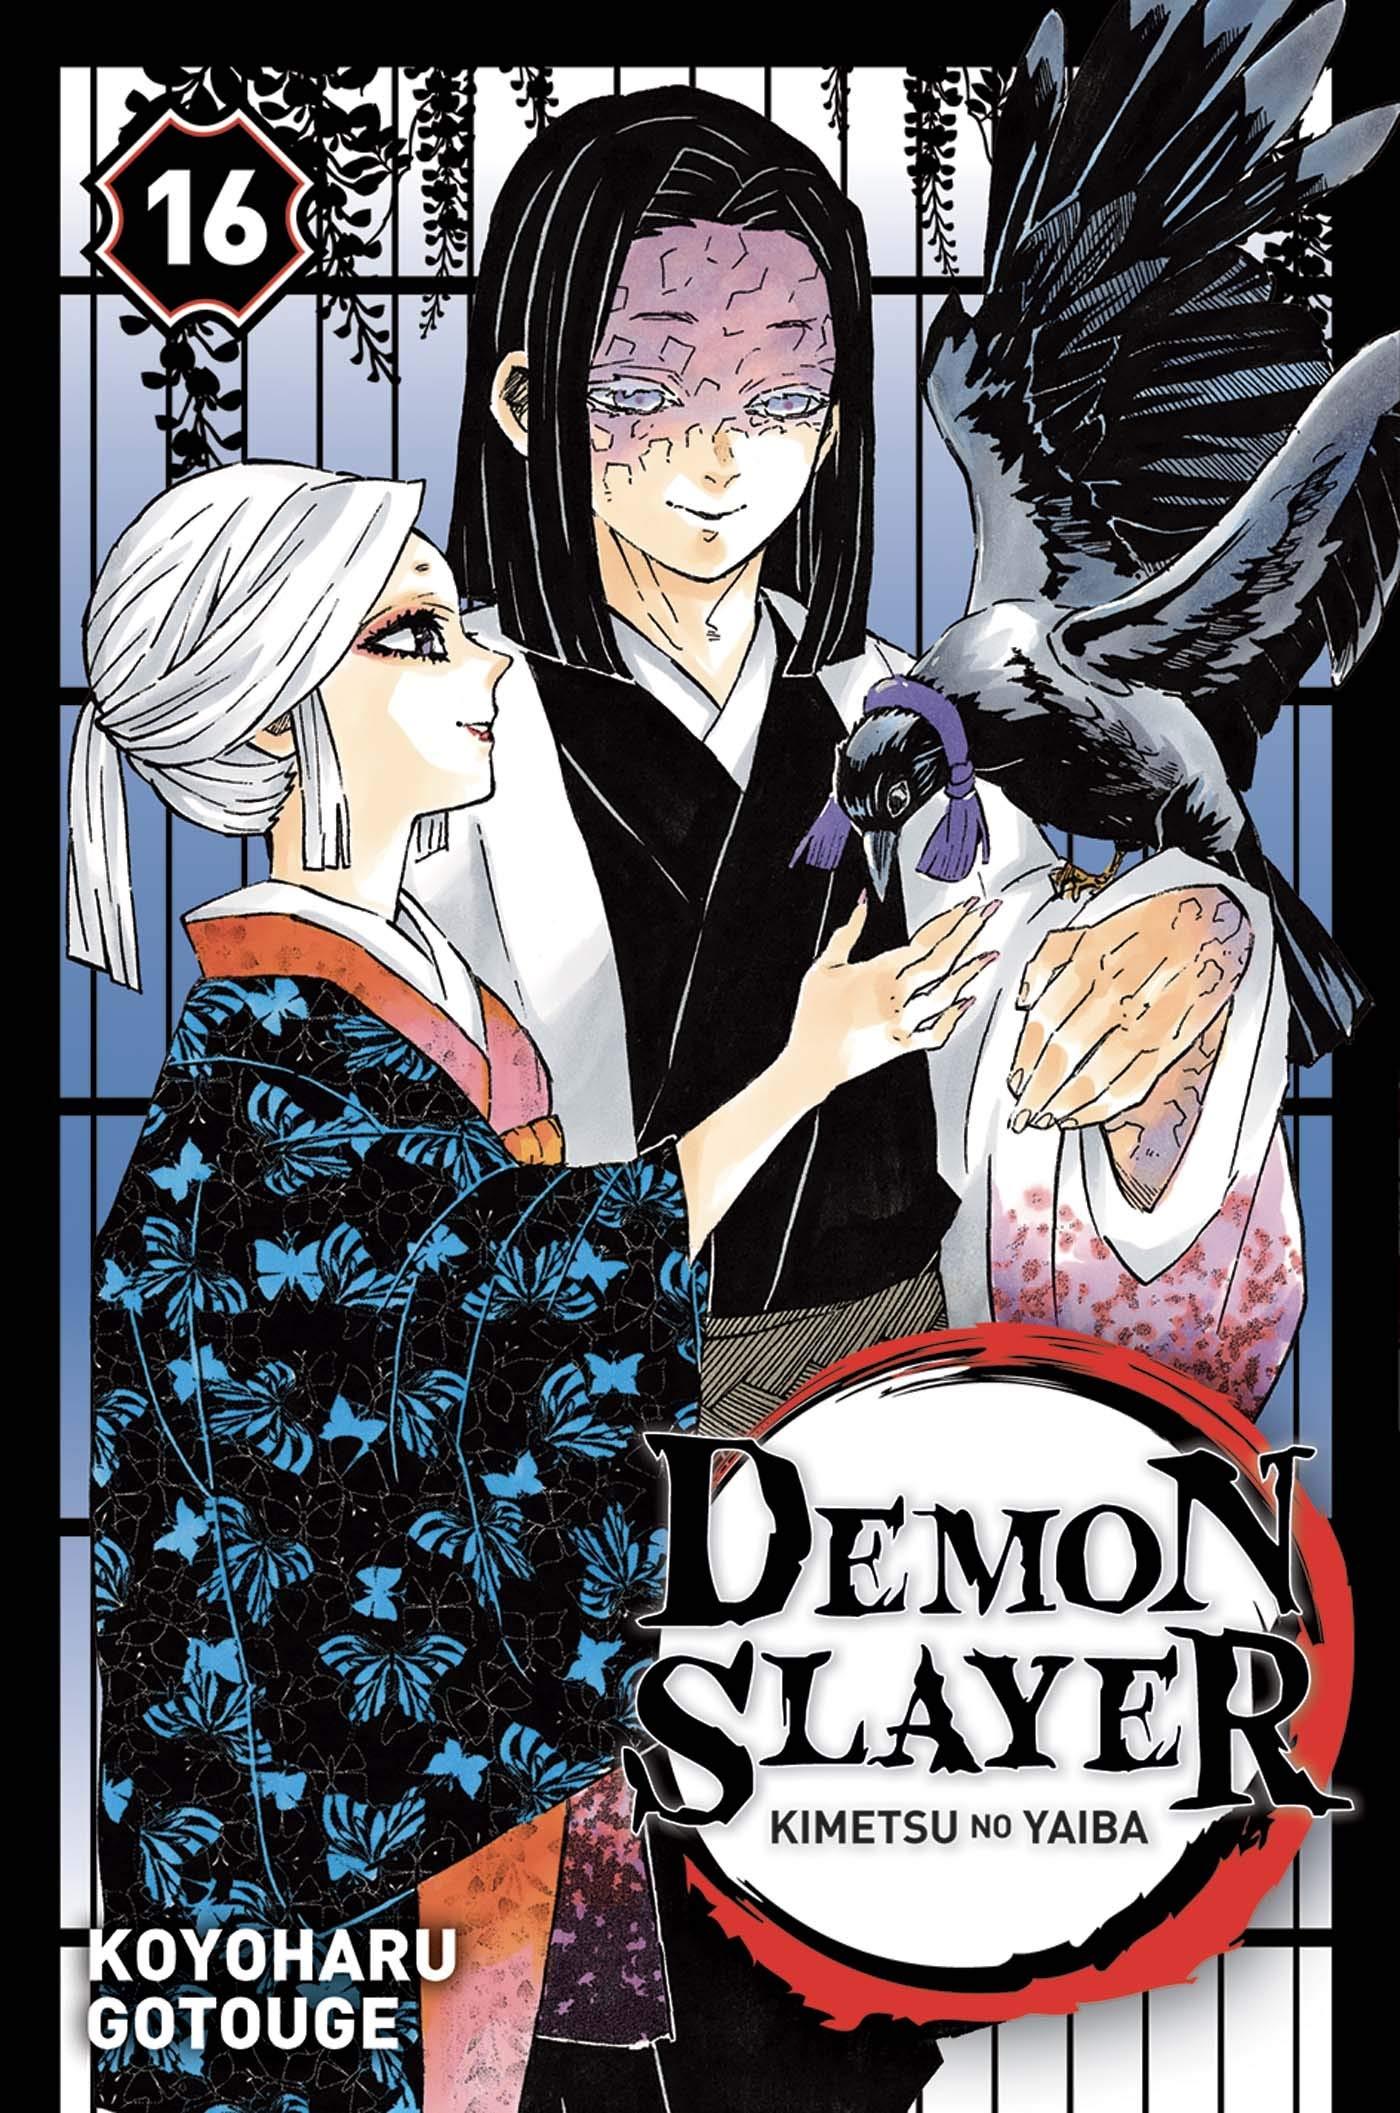 Demon slayer 16